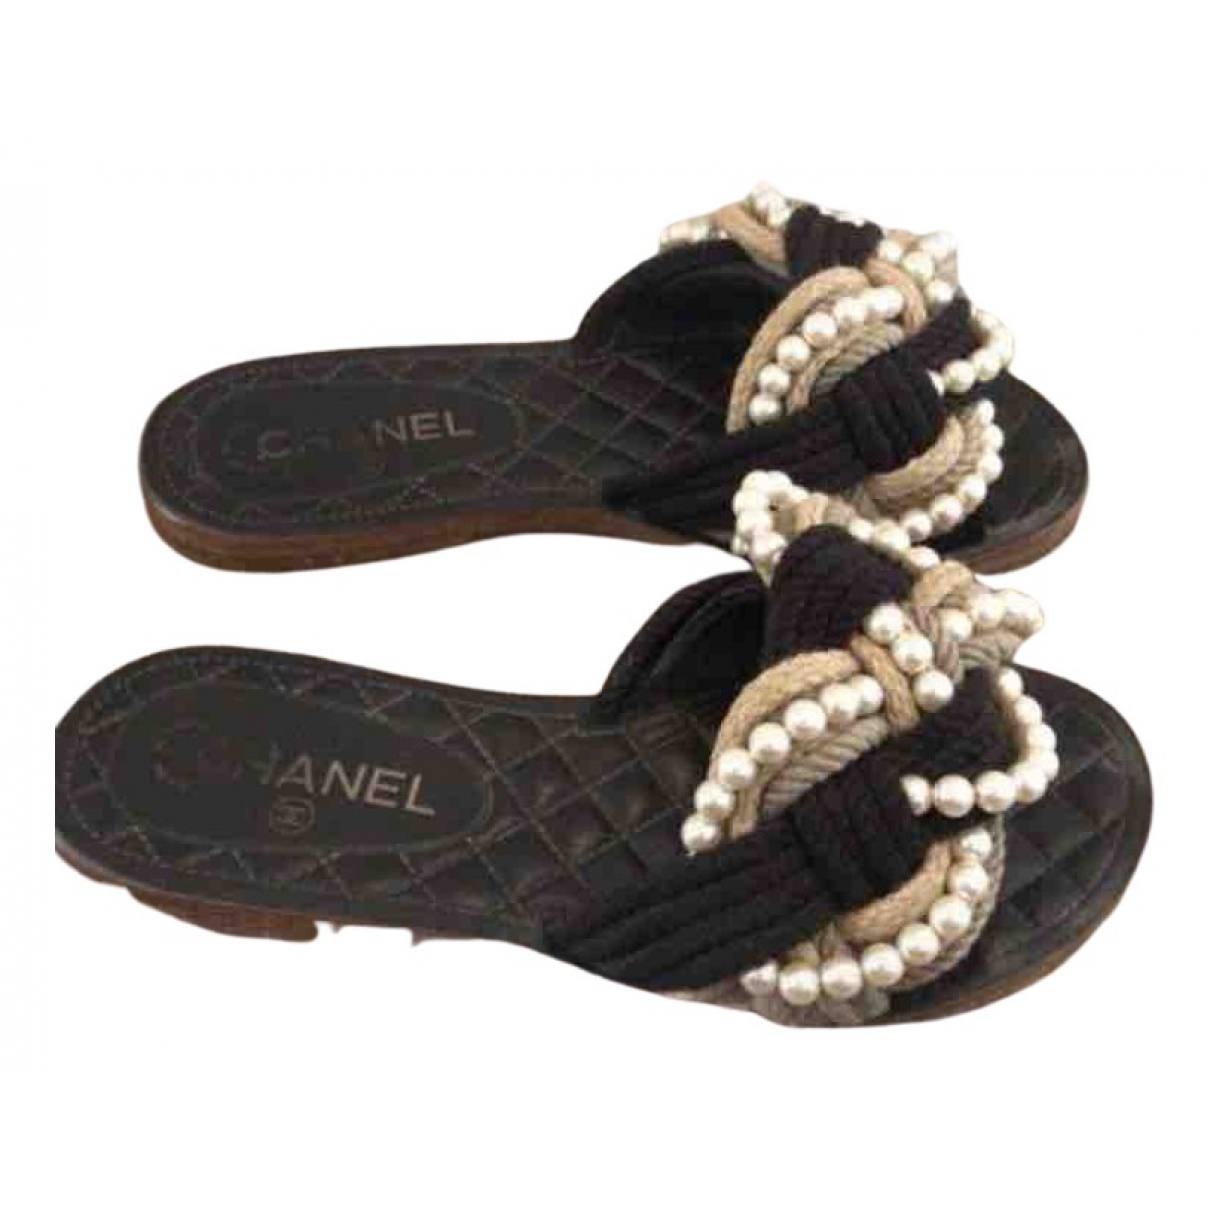 Chanel N Multicolour Cloth Sandals for Women 37 EU